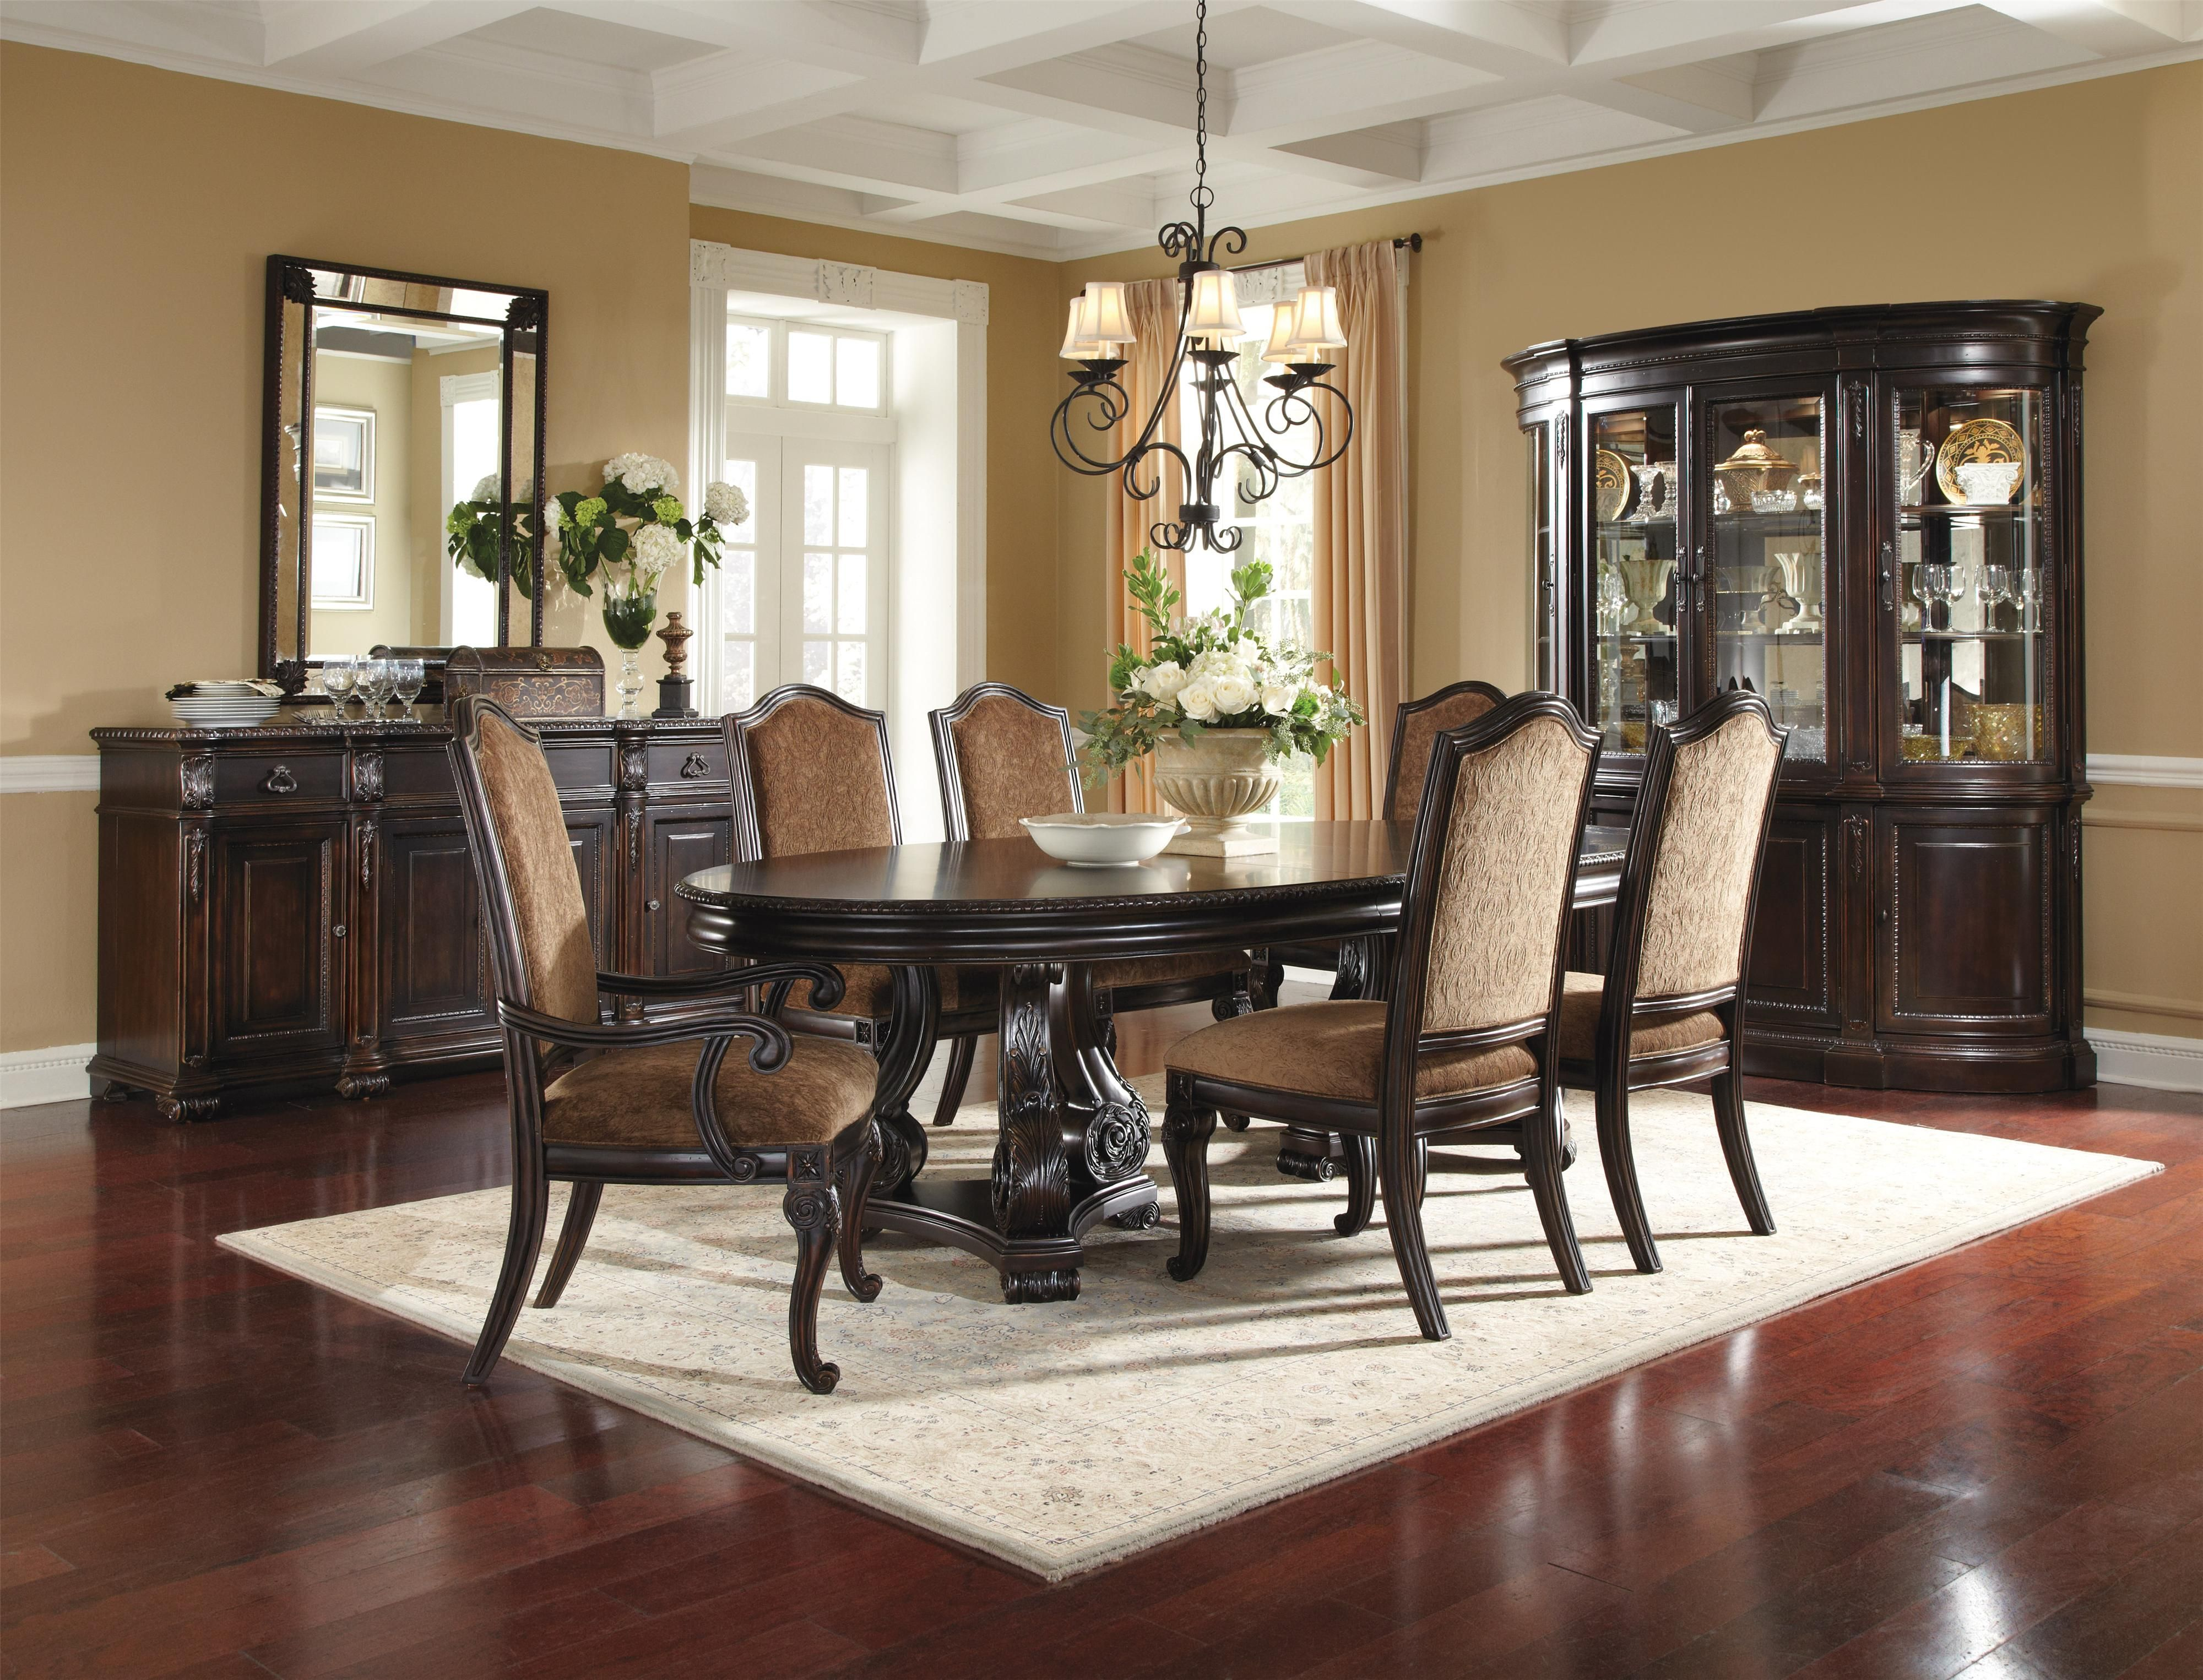 dining room with dARKER hardwood floors Google Search